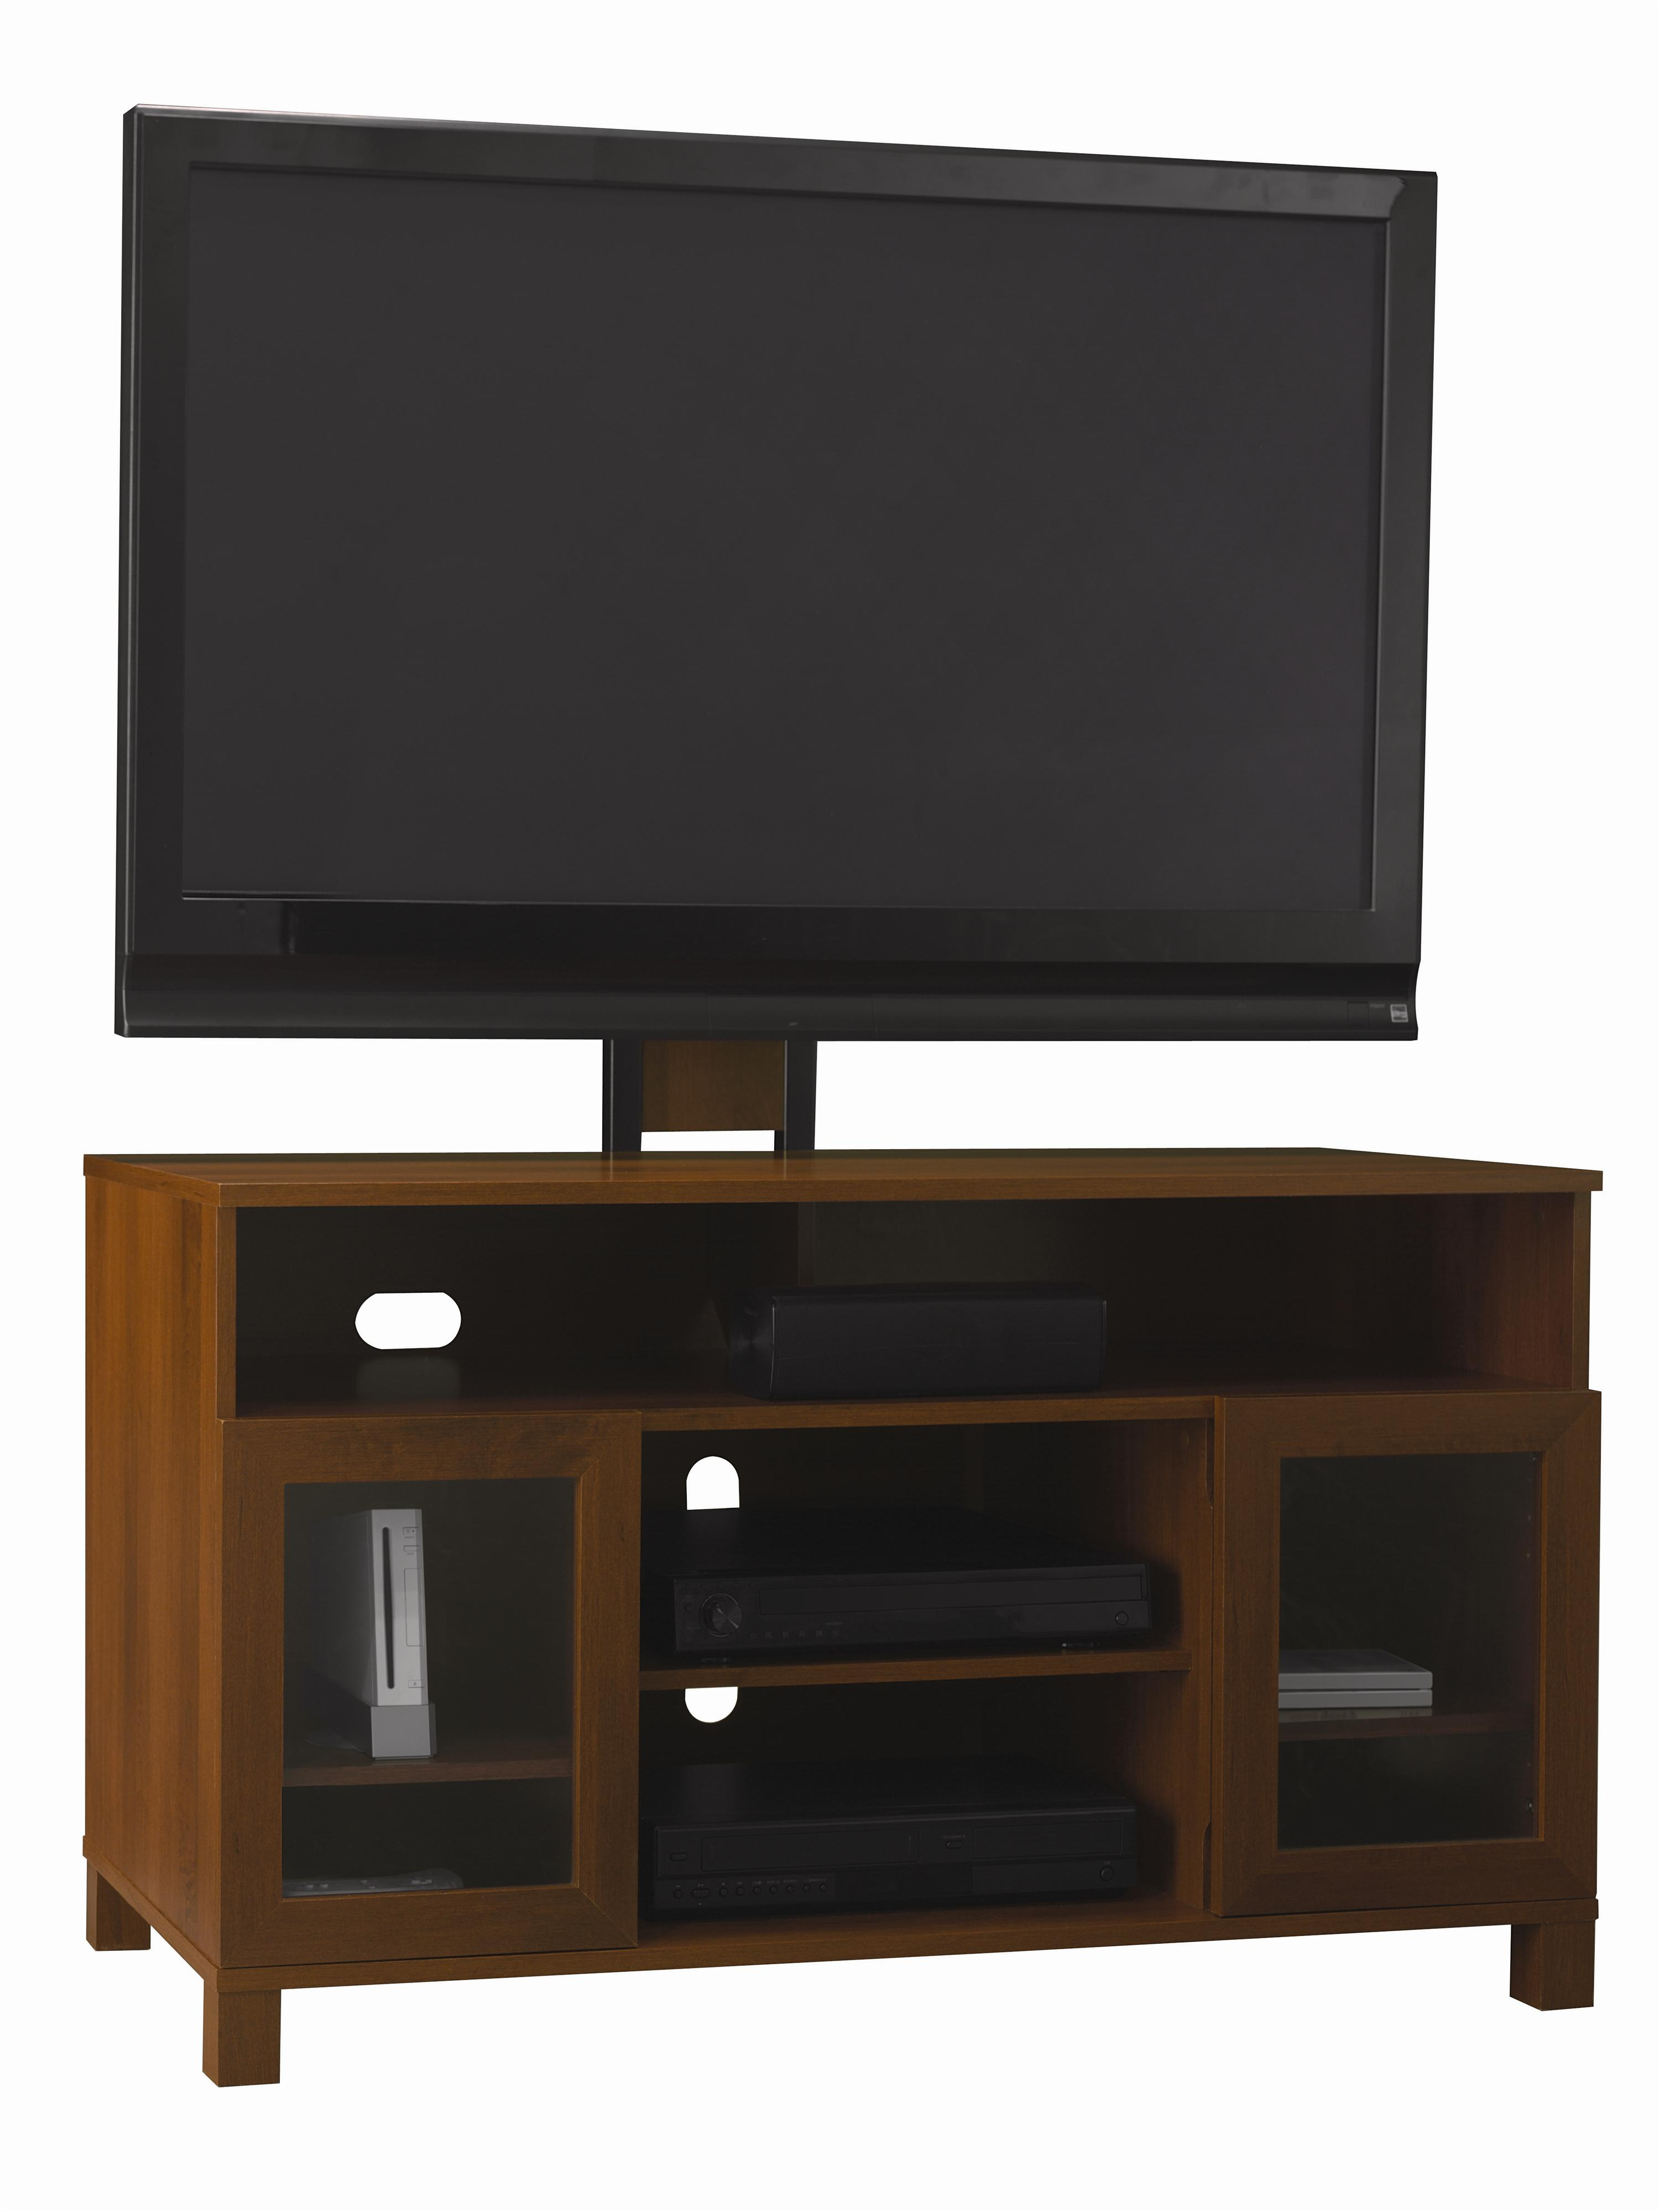 Bush Palindrome 3 In 1 Tv Stand For Flat Panel Tvs Fmg Local